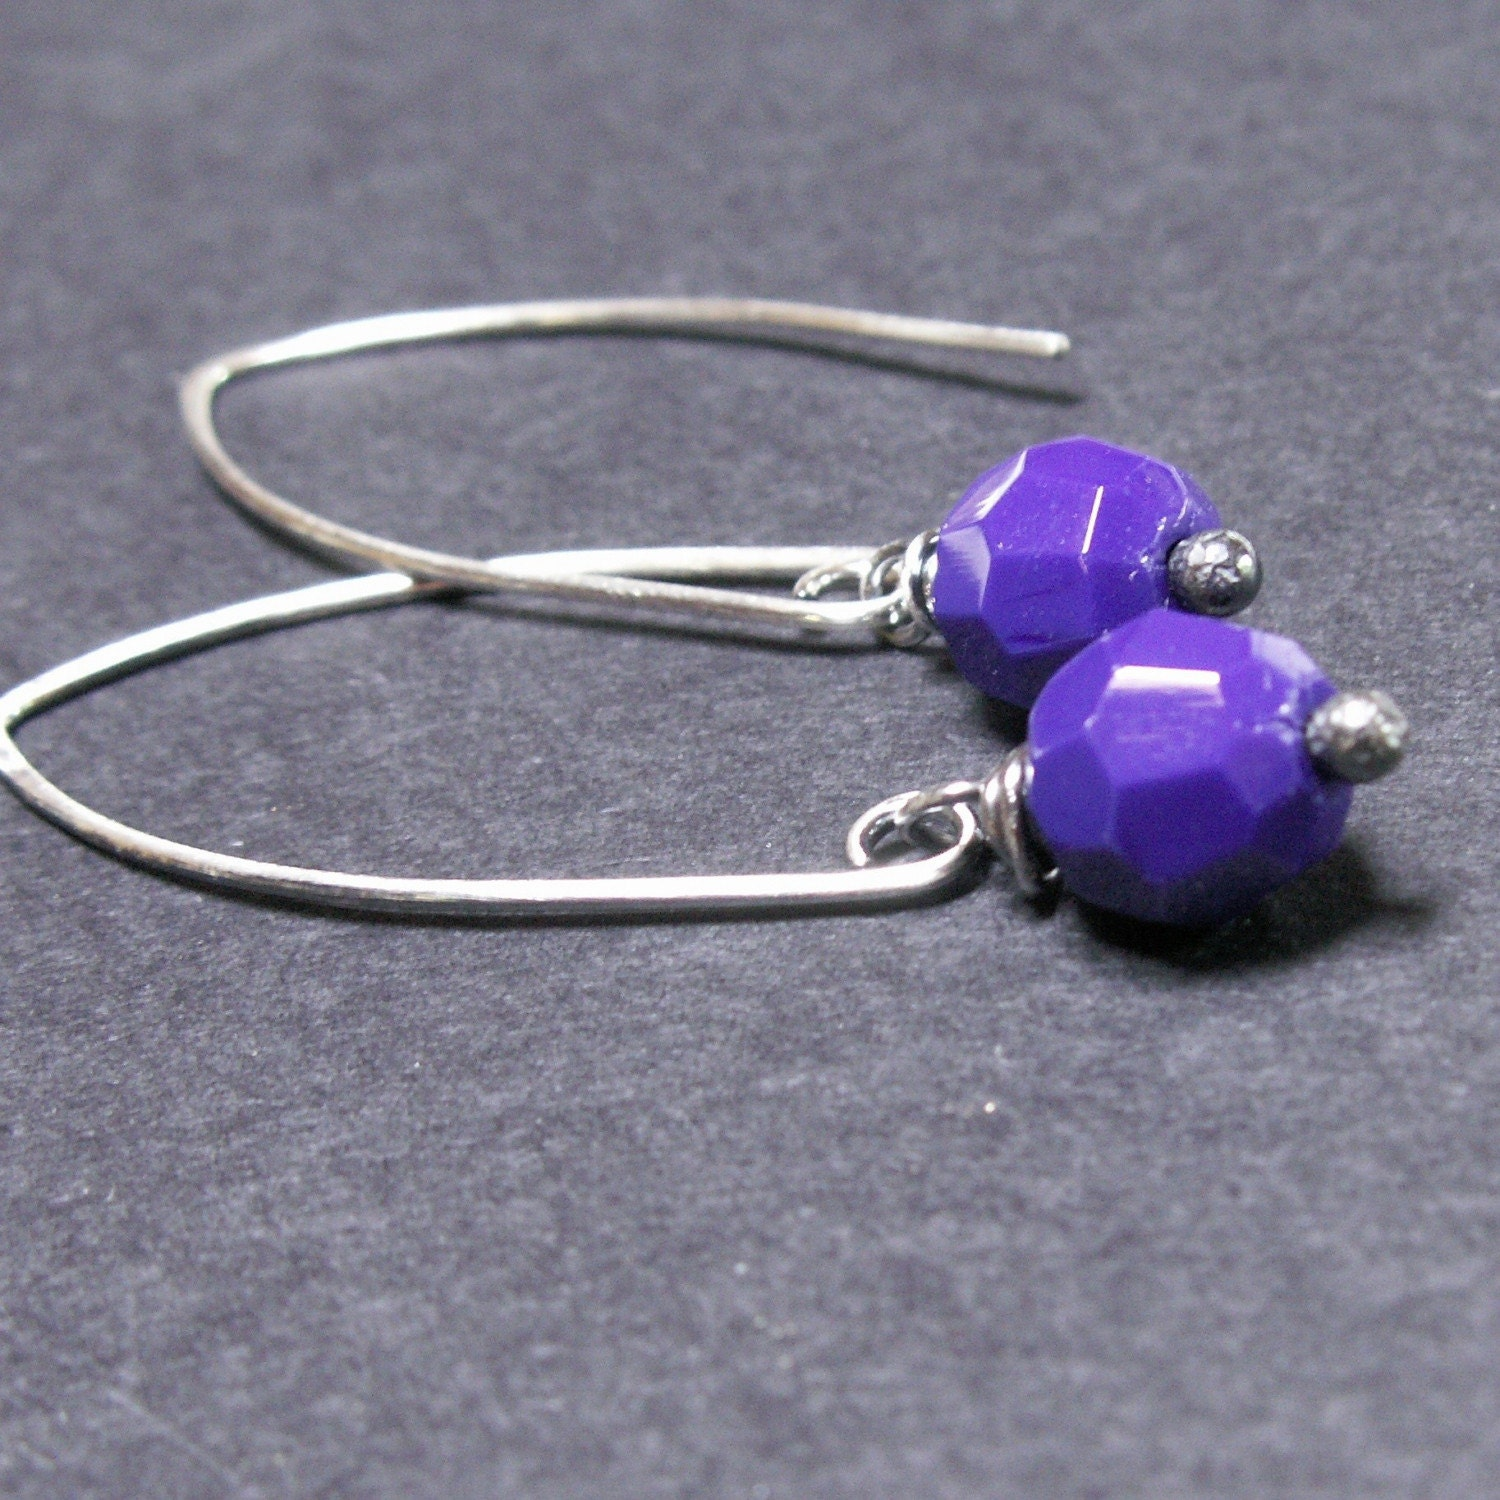 handmade jewelry earrings sterling silver cobalt blue vintage glass beads